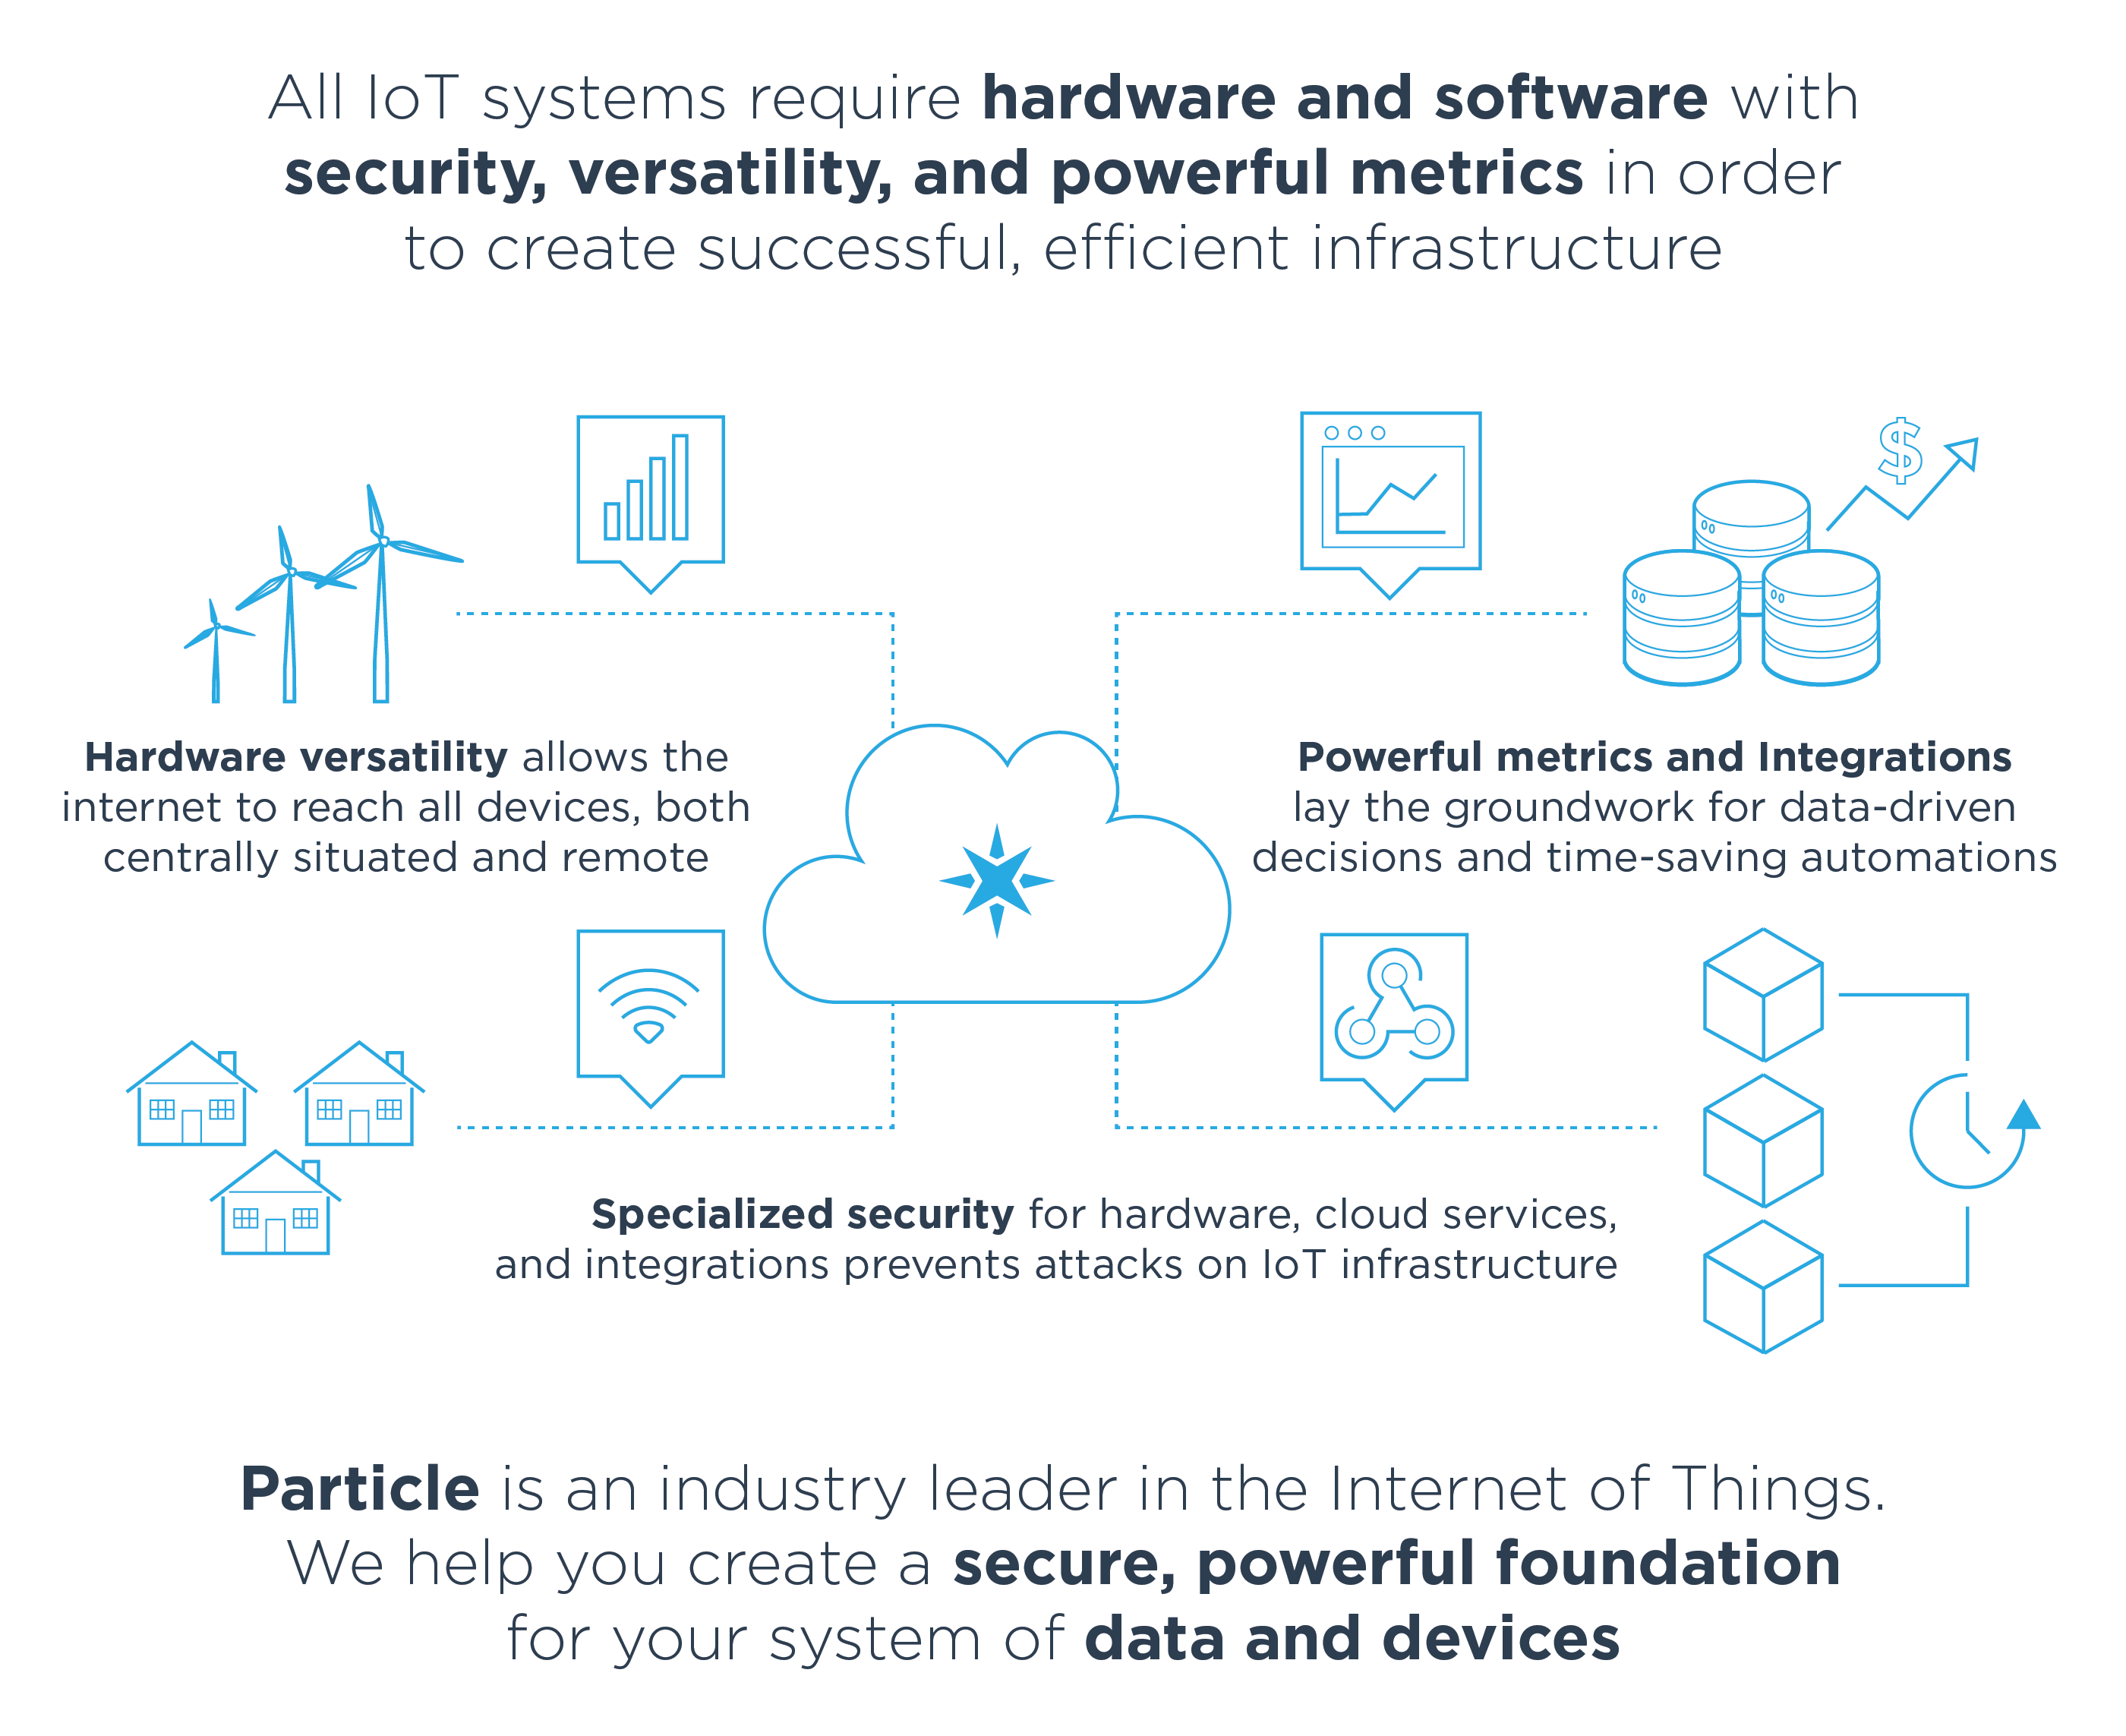 All IoT systems require hardware and software with security, versatility, and powerful metrics in order to create successful, efficient infrastructure. Particle is an industry leader in the Internet of Things. We help you create a secure, powerful foundation for your system of data and devices.